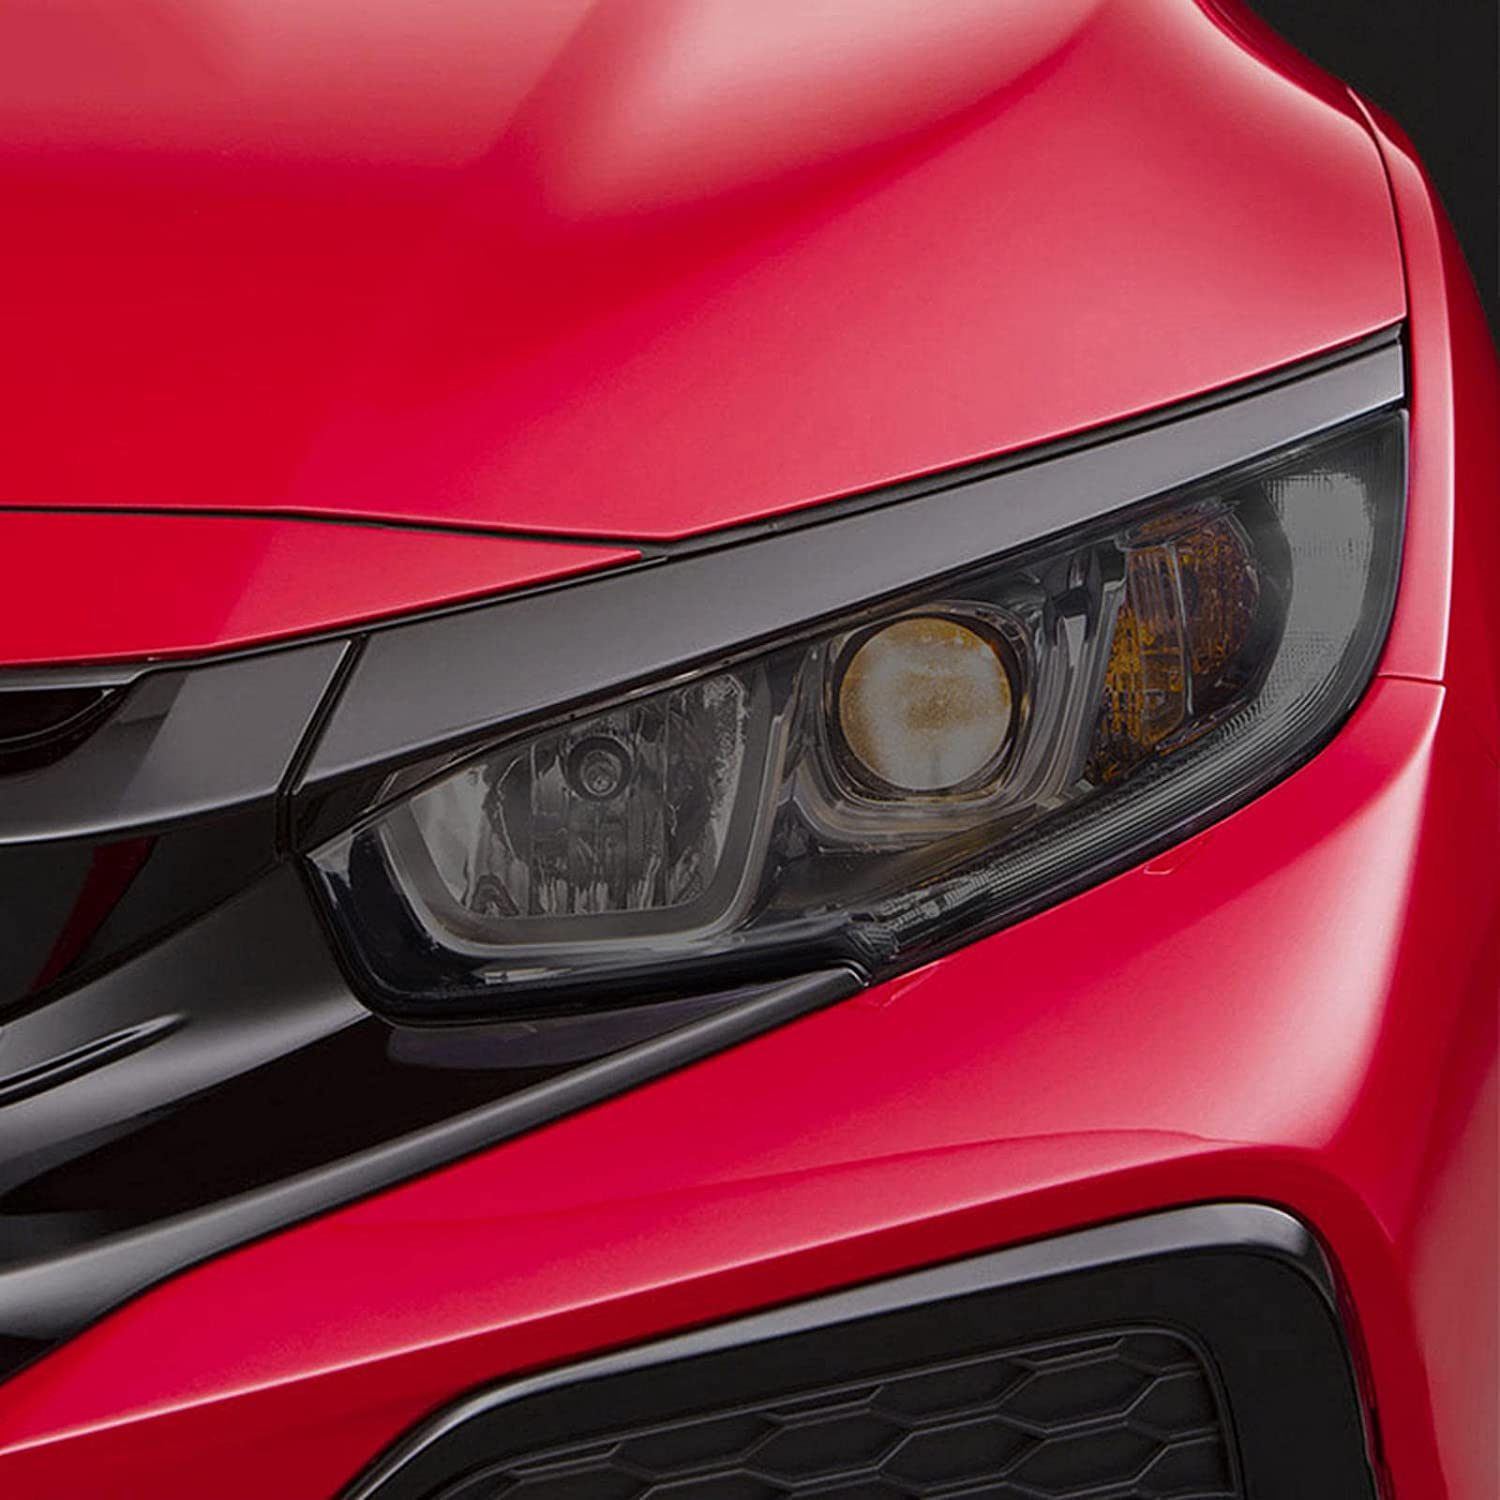 BTOEFE Car Headlight Protective Film 70% OFF Outlet Transparent Smo Front Minneapolis Mall Light